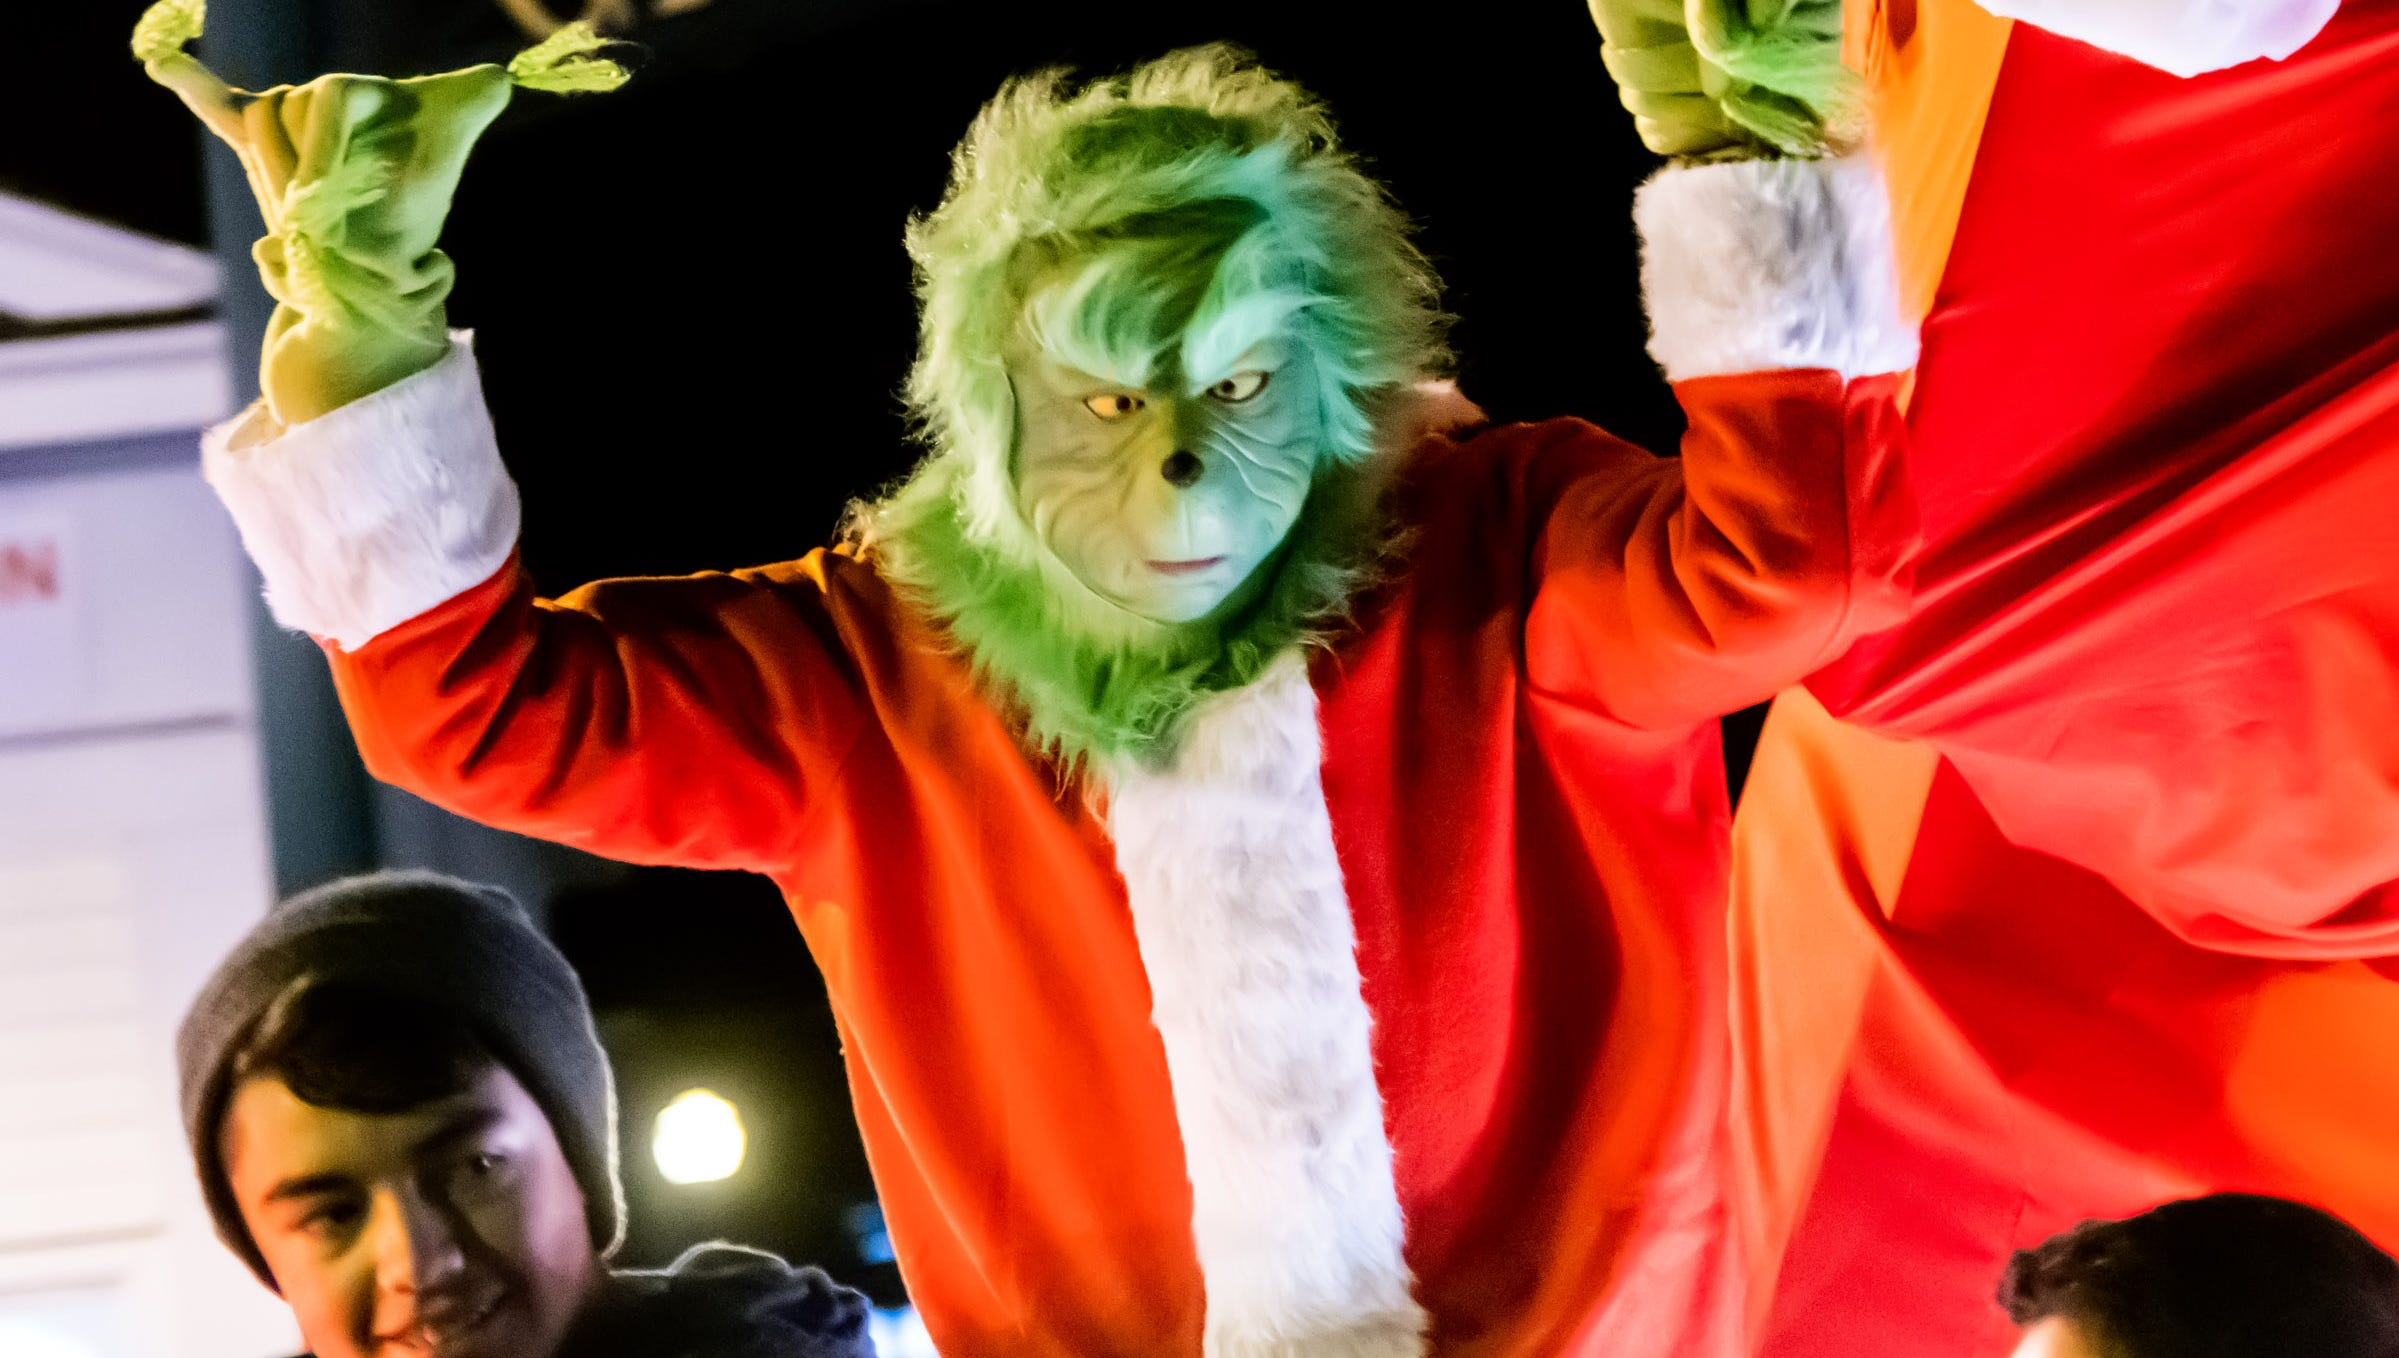 The Grinch peers down from atop his float.